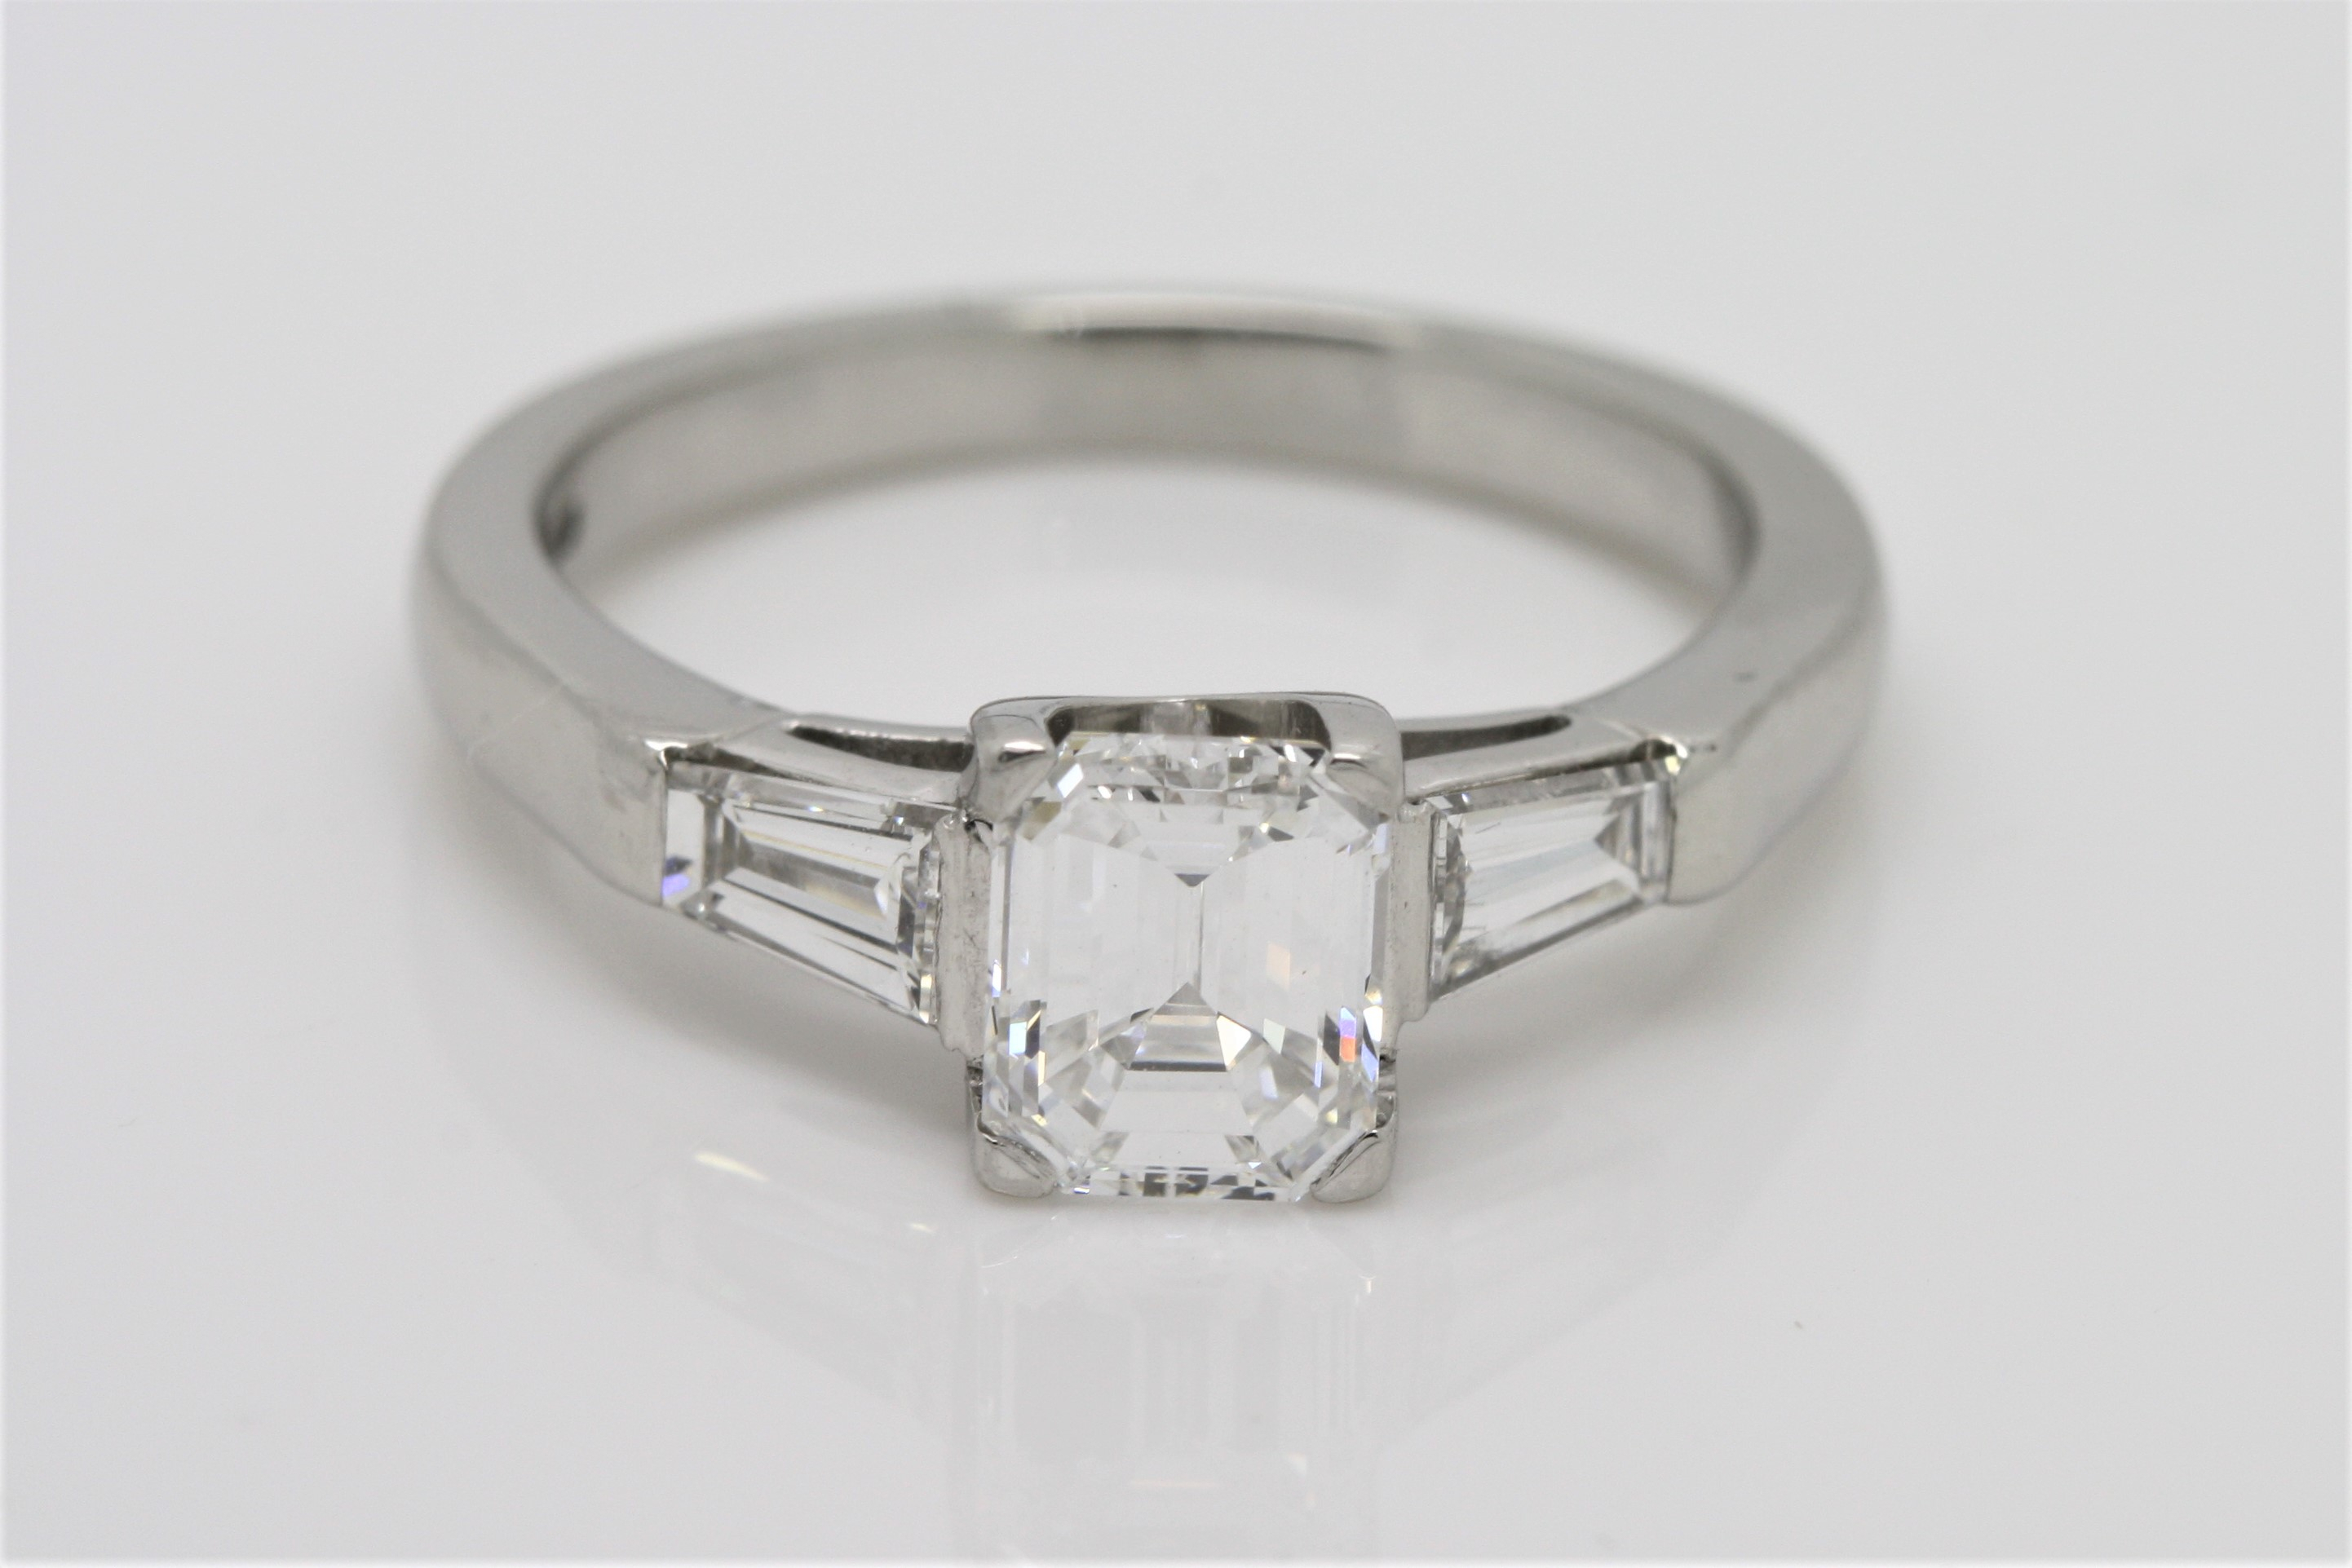 Emerald Cut Diamond Solitaire With Diamond Tapered Baguette Side Stones In  Platinum Ring Inside Cushion Cut Engagement Rings With Tapered Baguette Side Stones (View 18 of 25)